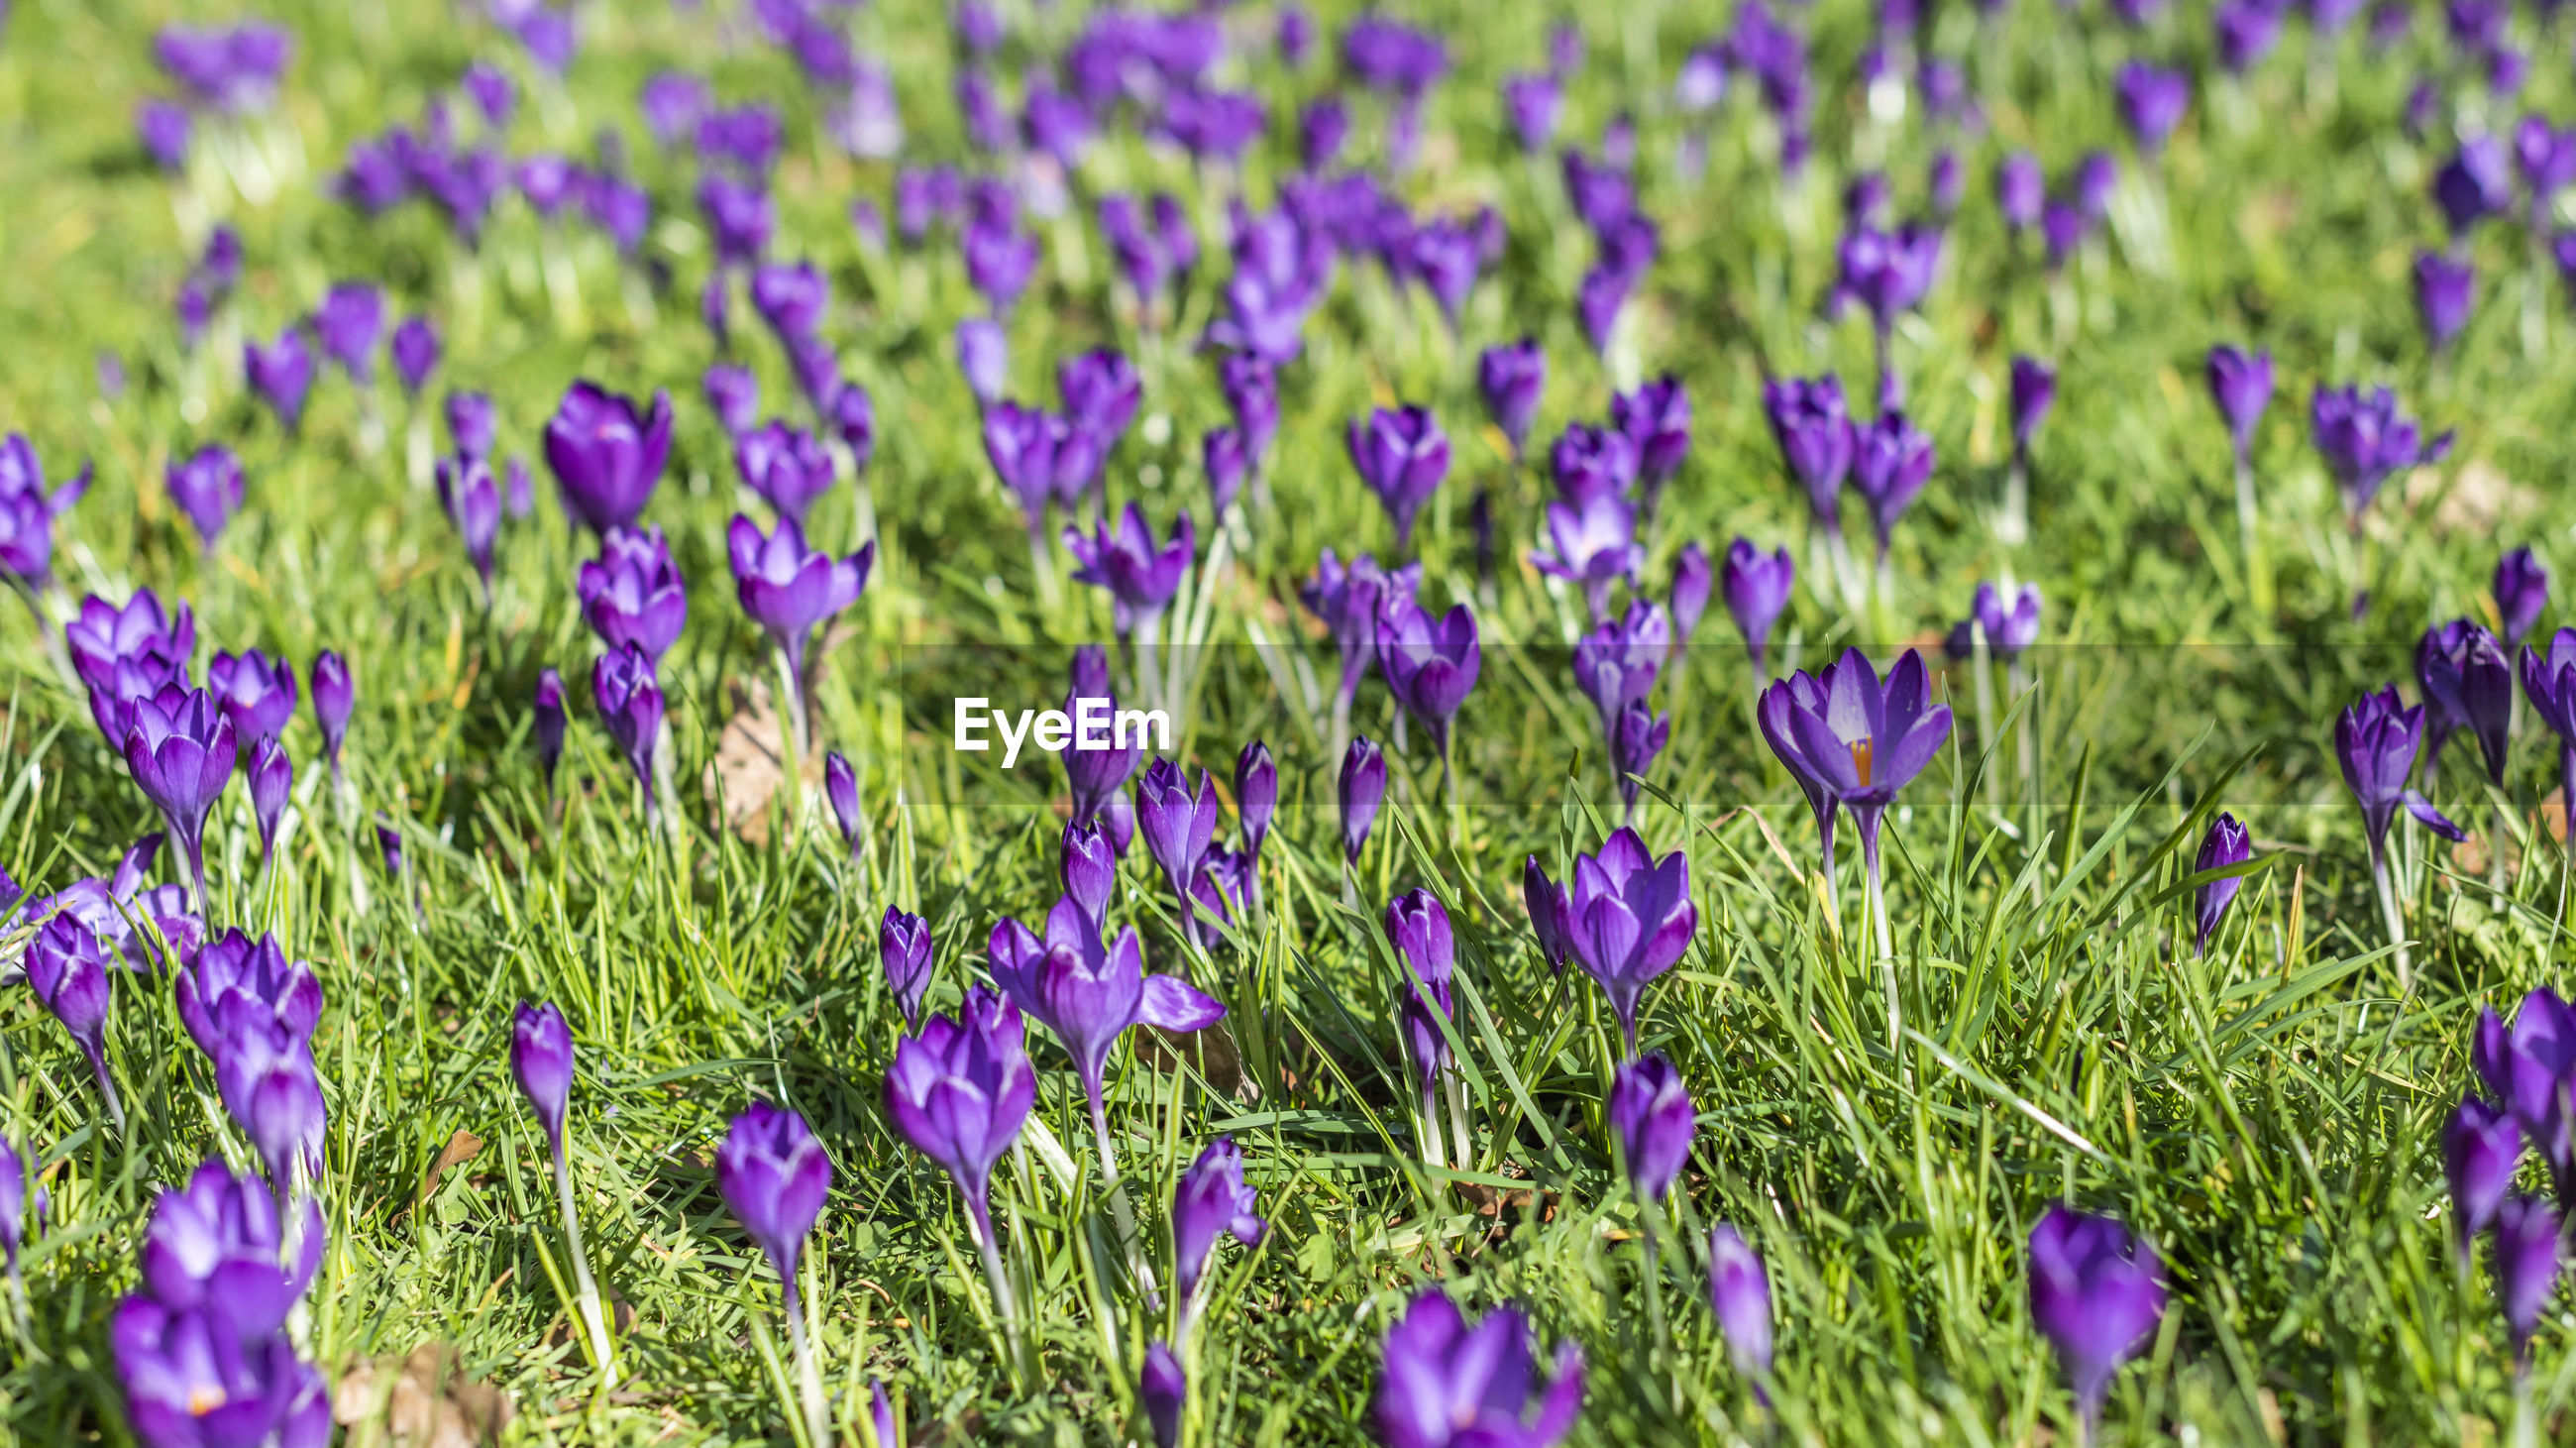 Detail photograph of the group of the spring crocus flowers in the green grass in the sun light